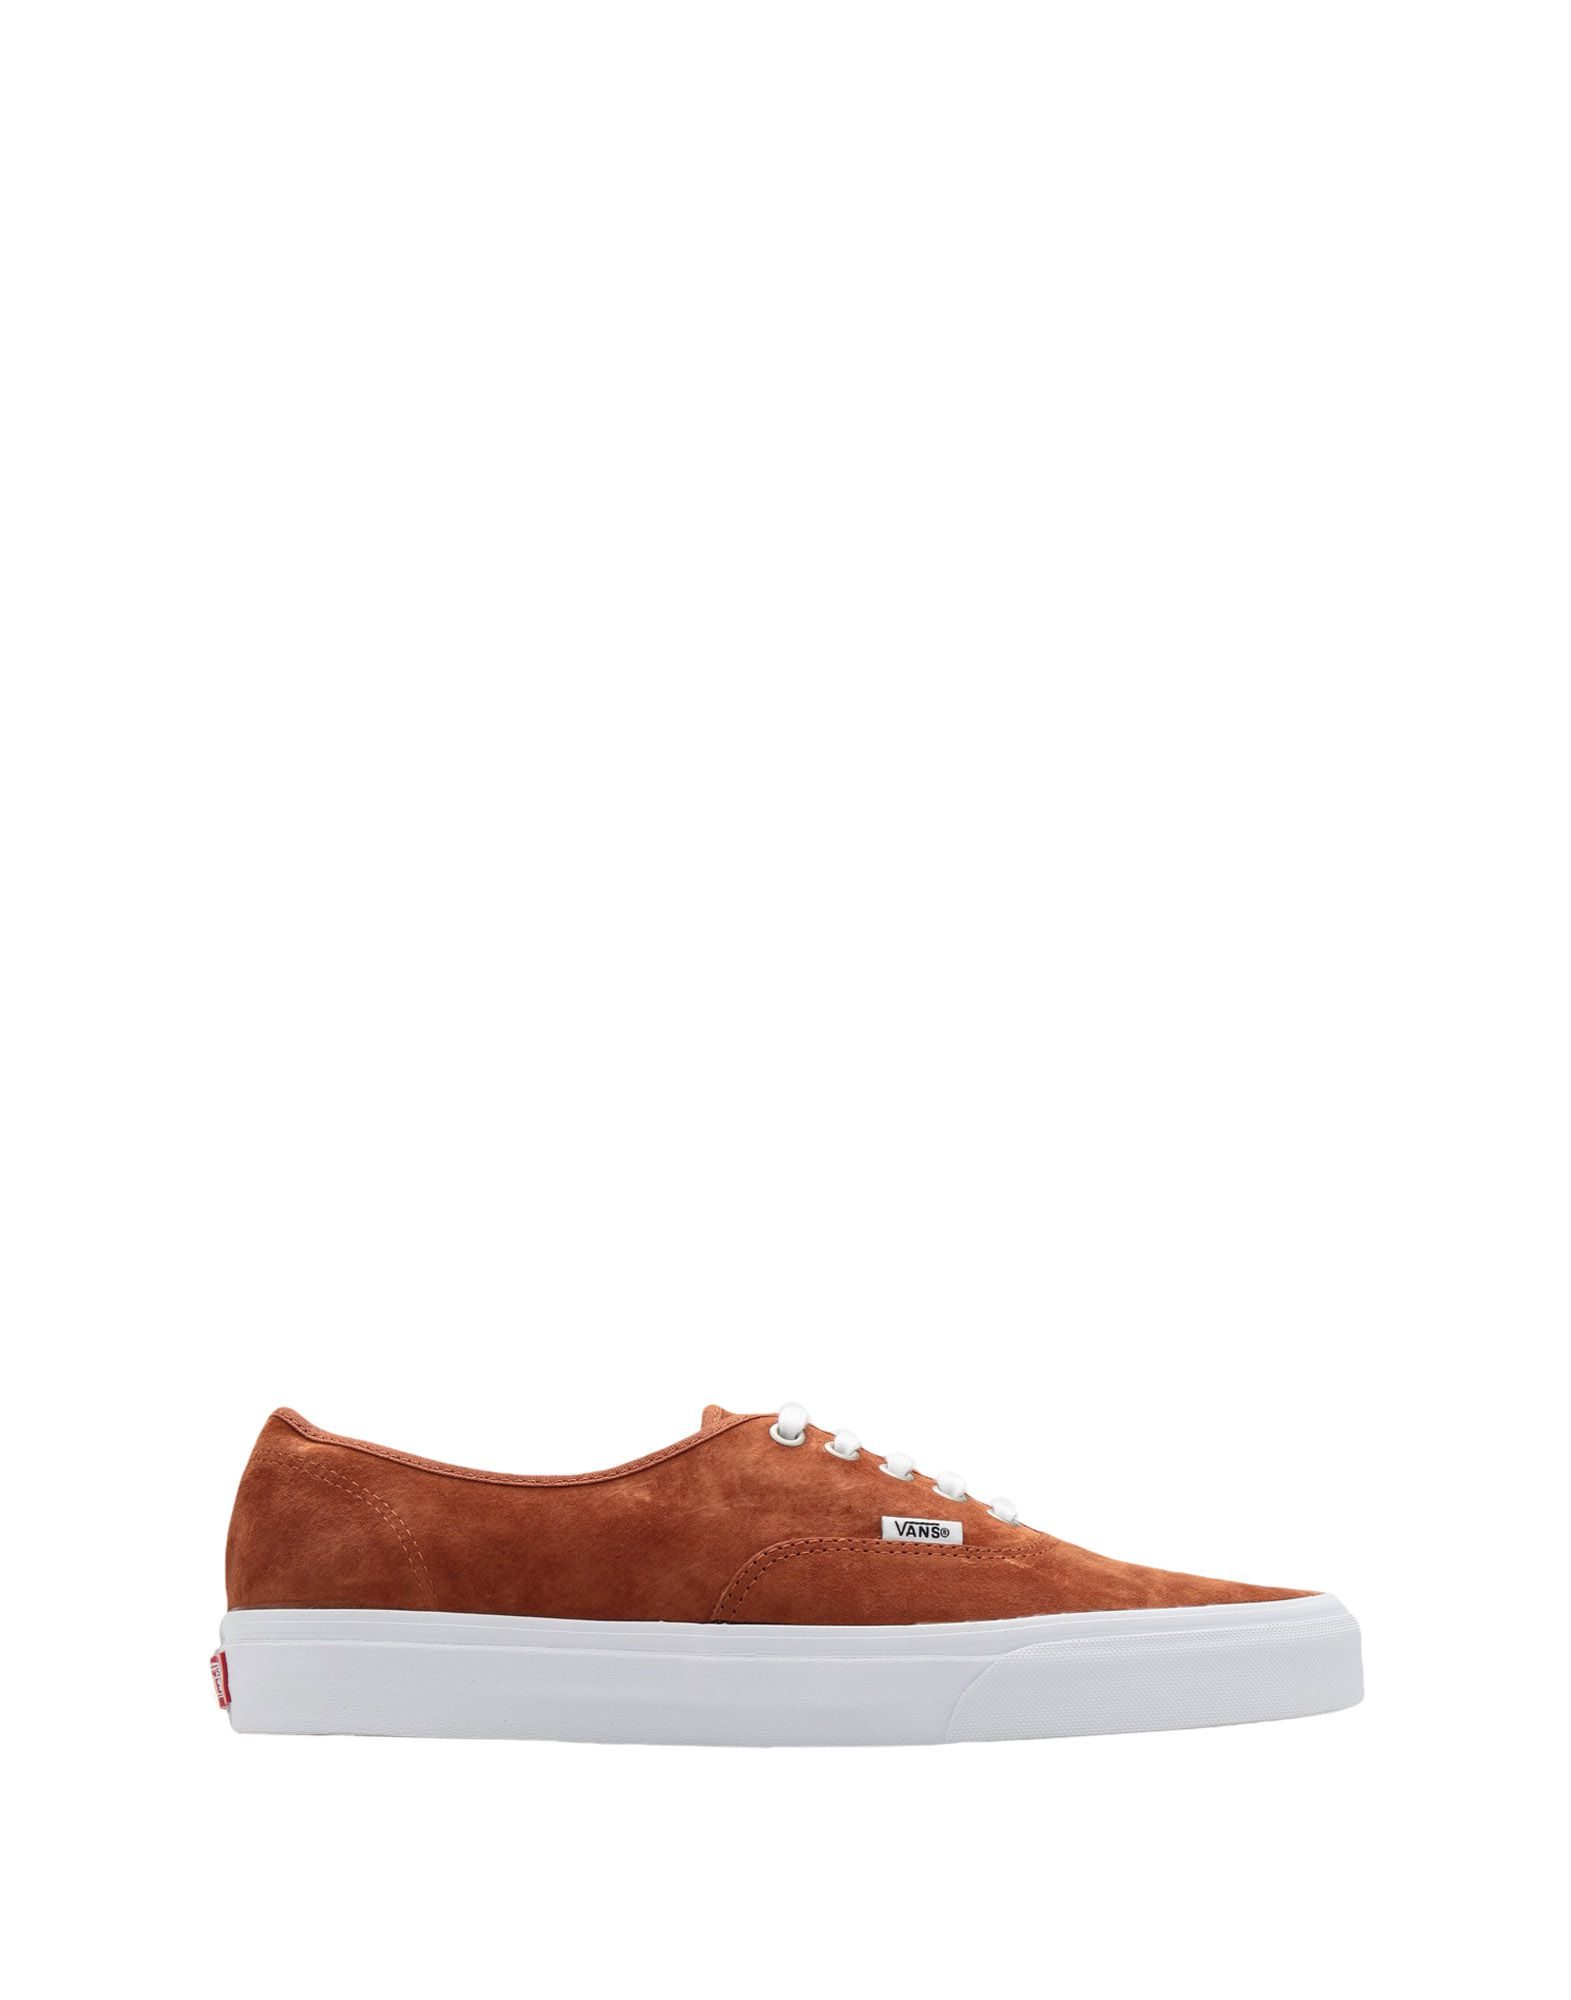 Vans Ua Authentic (Pig Suede) - Uomo - 11559989IE